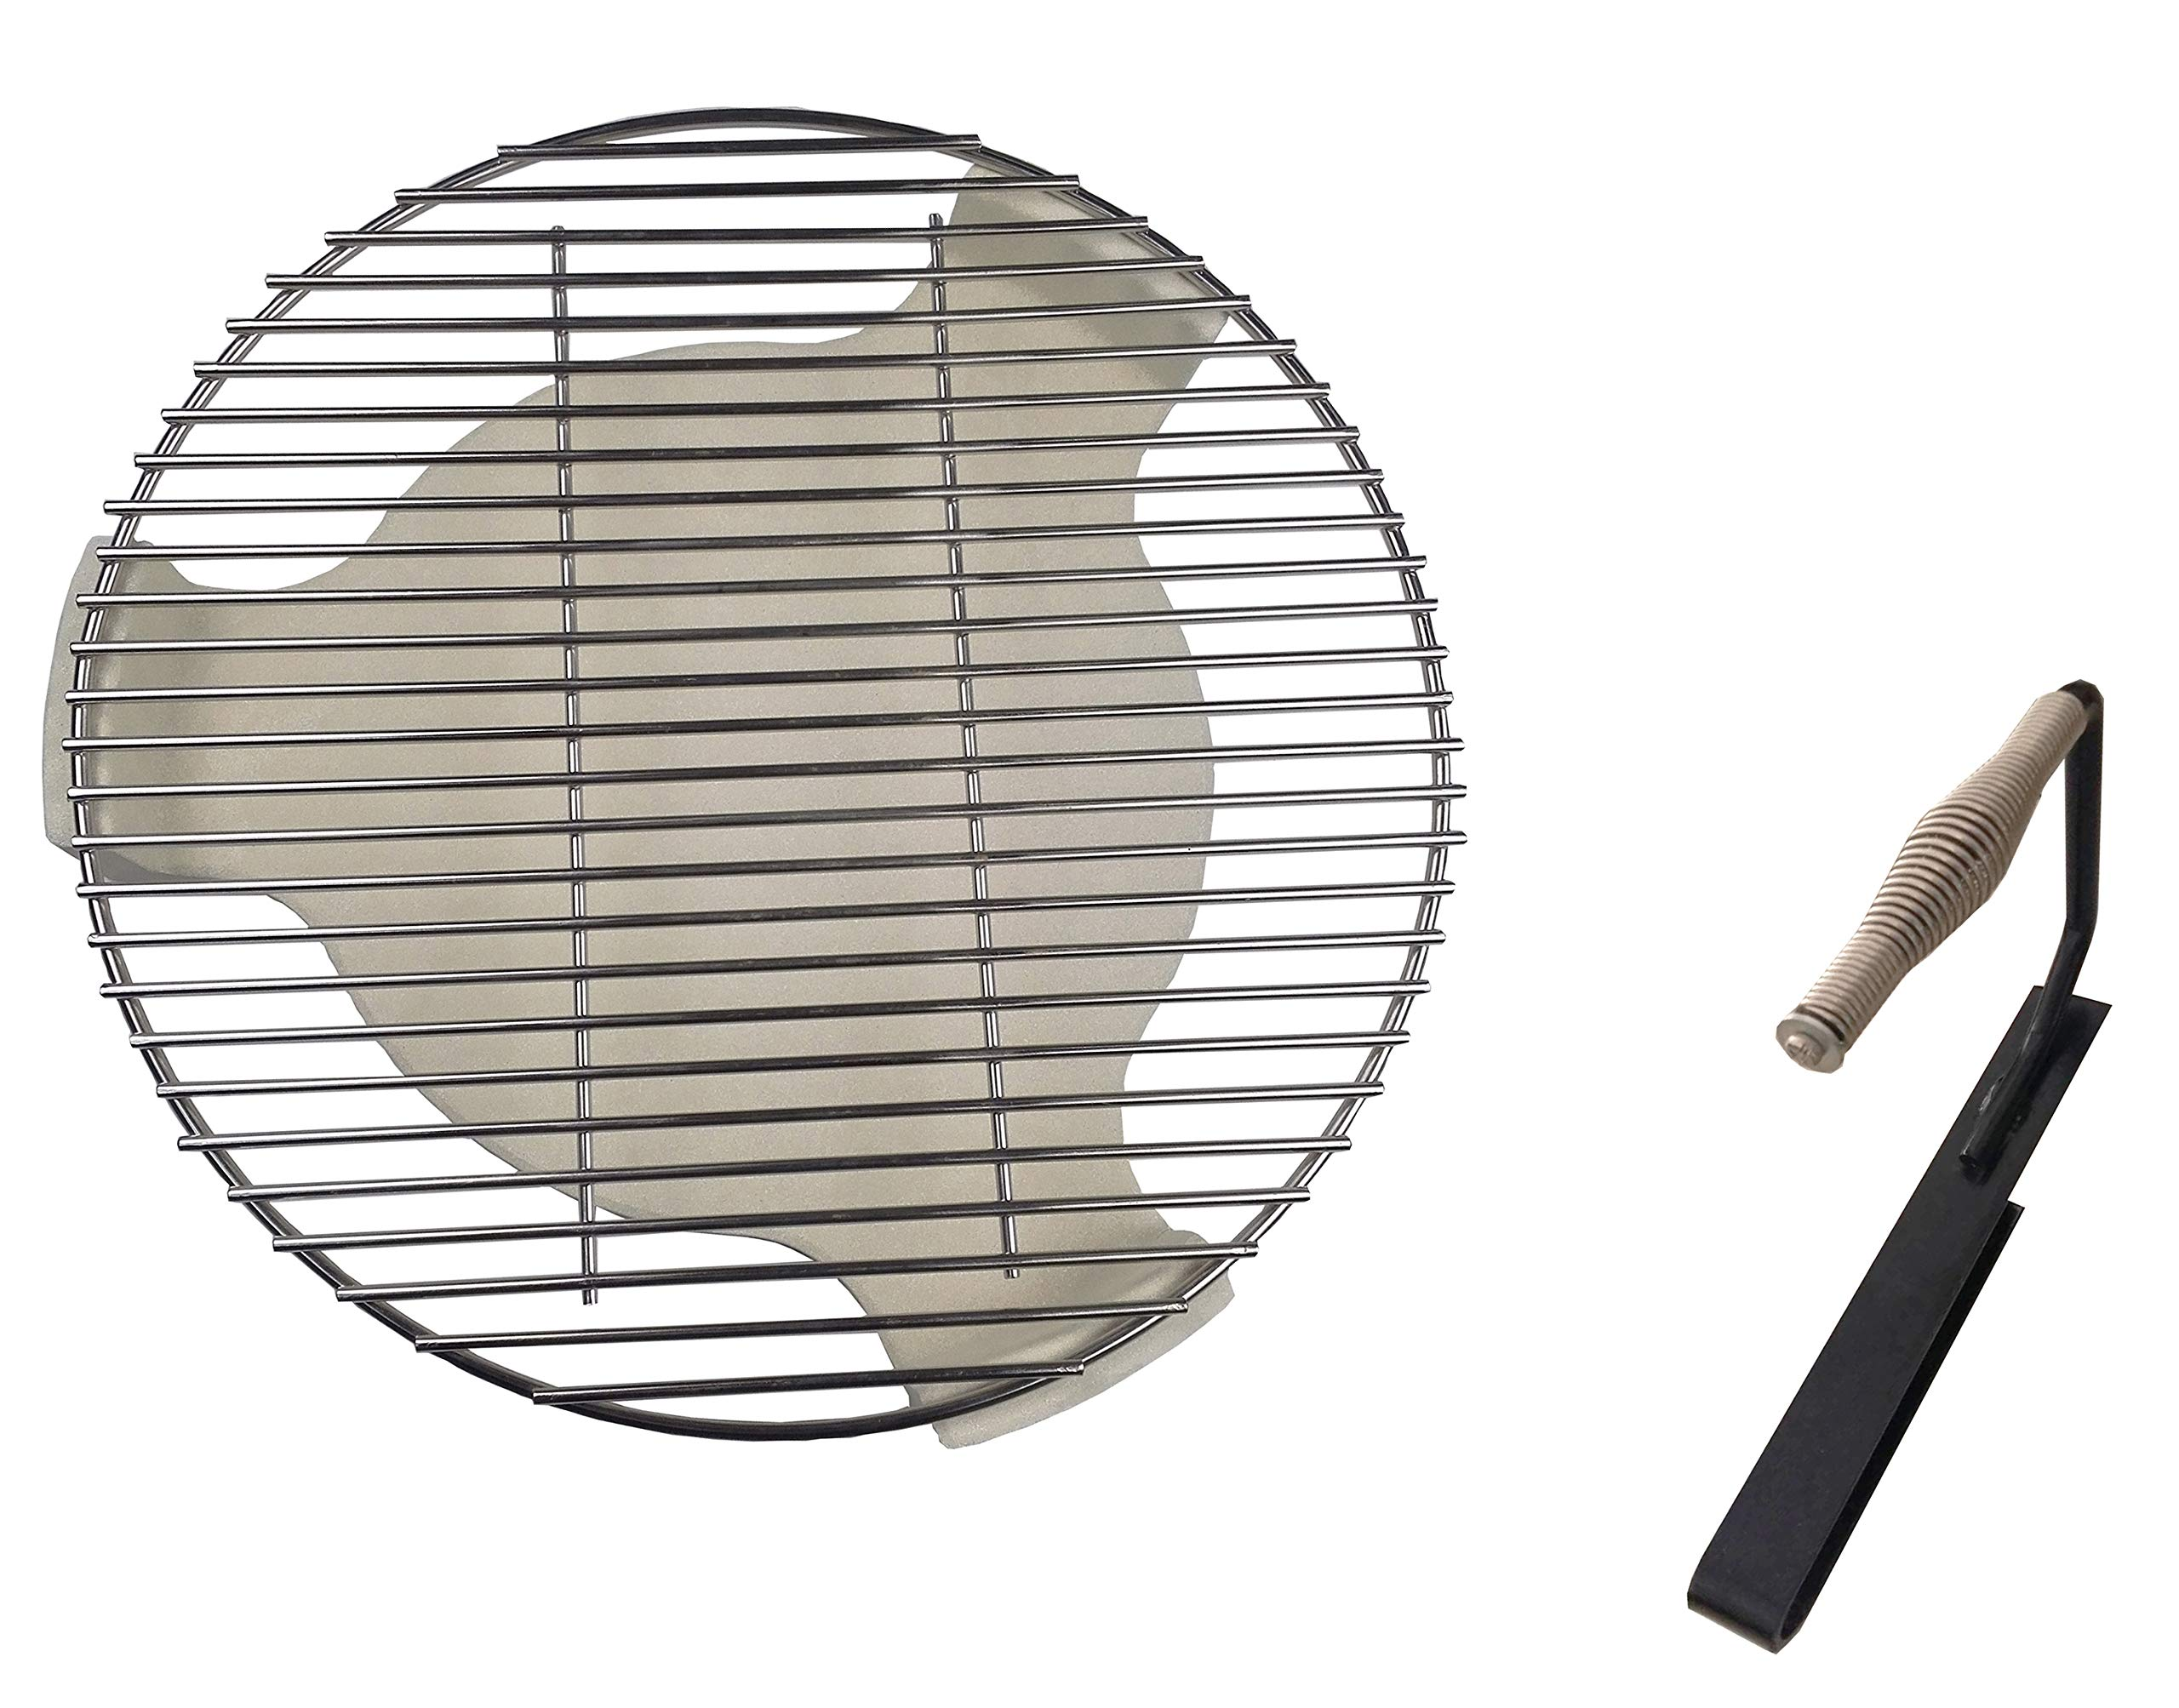 soldbbq Ceramic Plate Setter, Heat Deflector & Stainless Steel Charcoal Fire Grate Fit for 18'' Dia Grill,Large - Big Green Egg, with 1 Handle Lifter by soldbbq